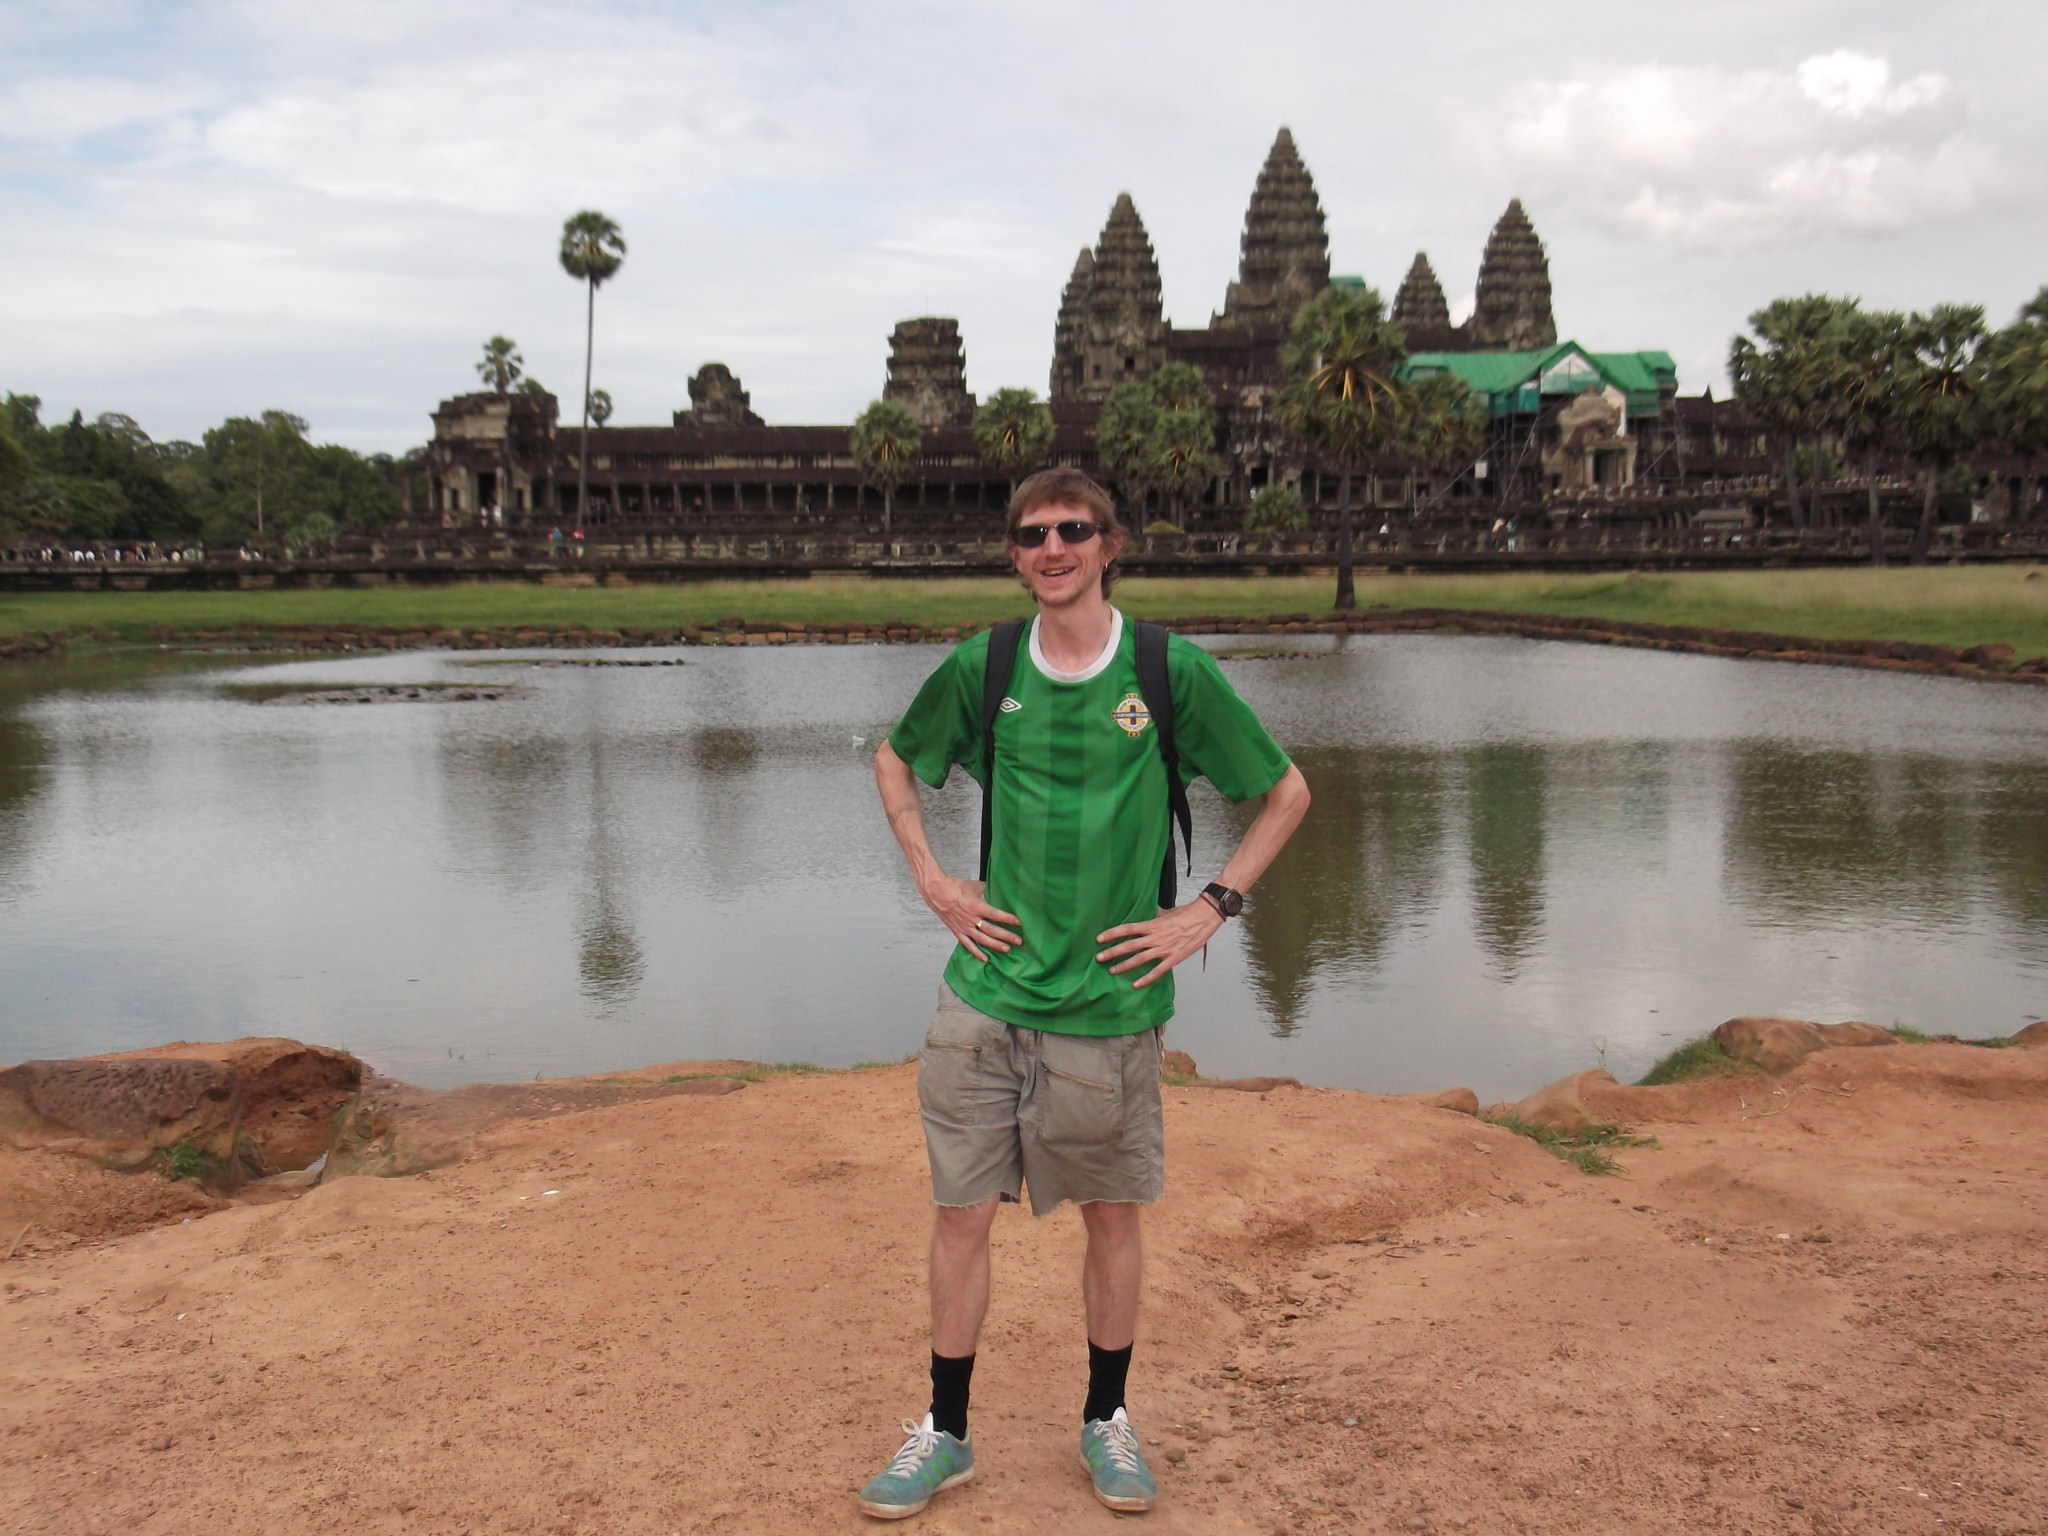 Jonny Blair at Angkor Wat in Cambodia